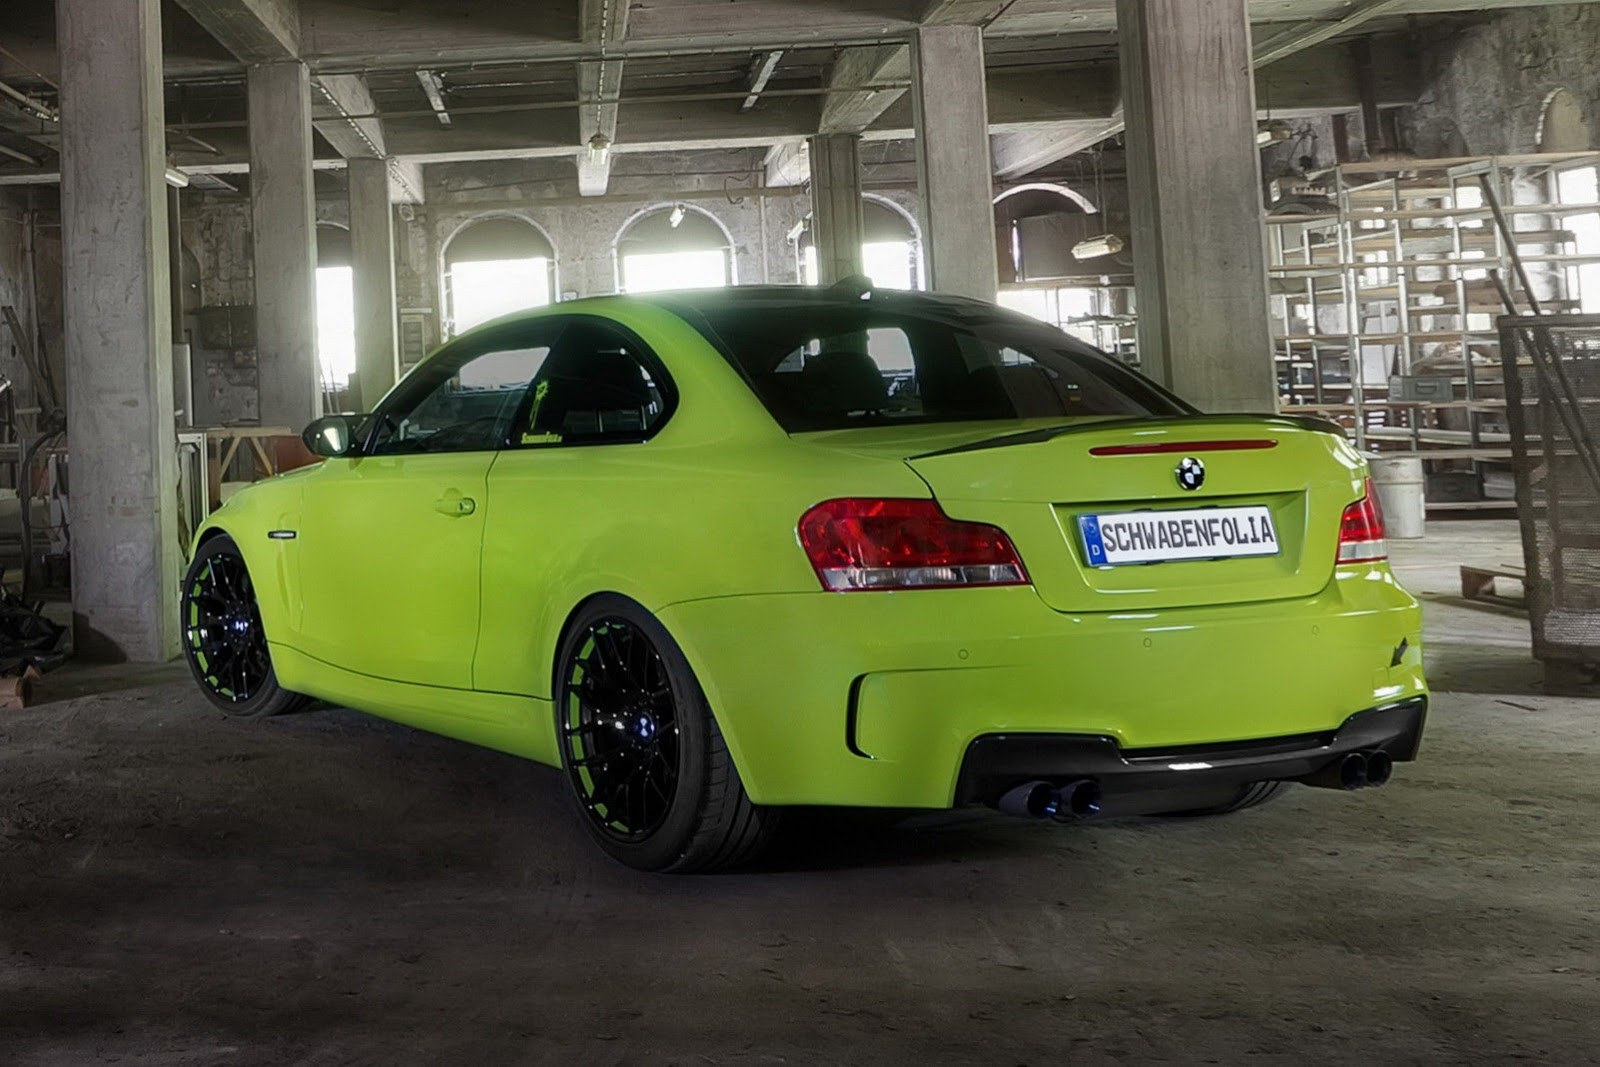 2013 Bmw 1 Series M Coupe By Schwabenfolia Top Speed